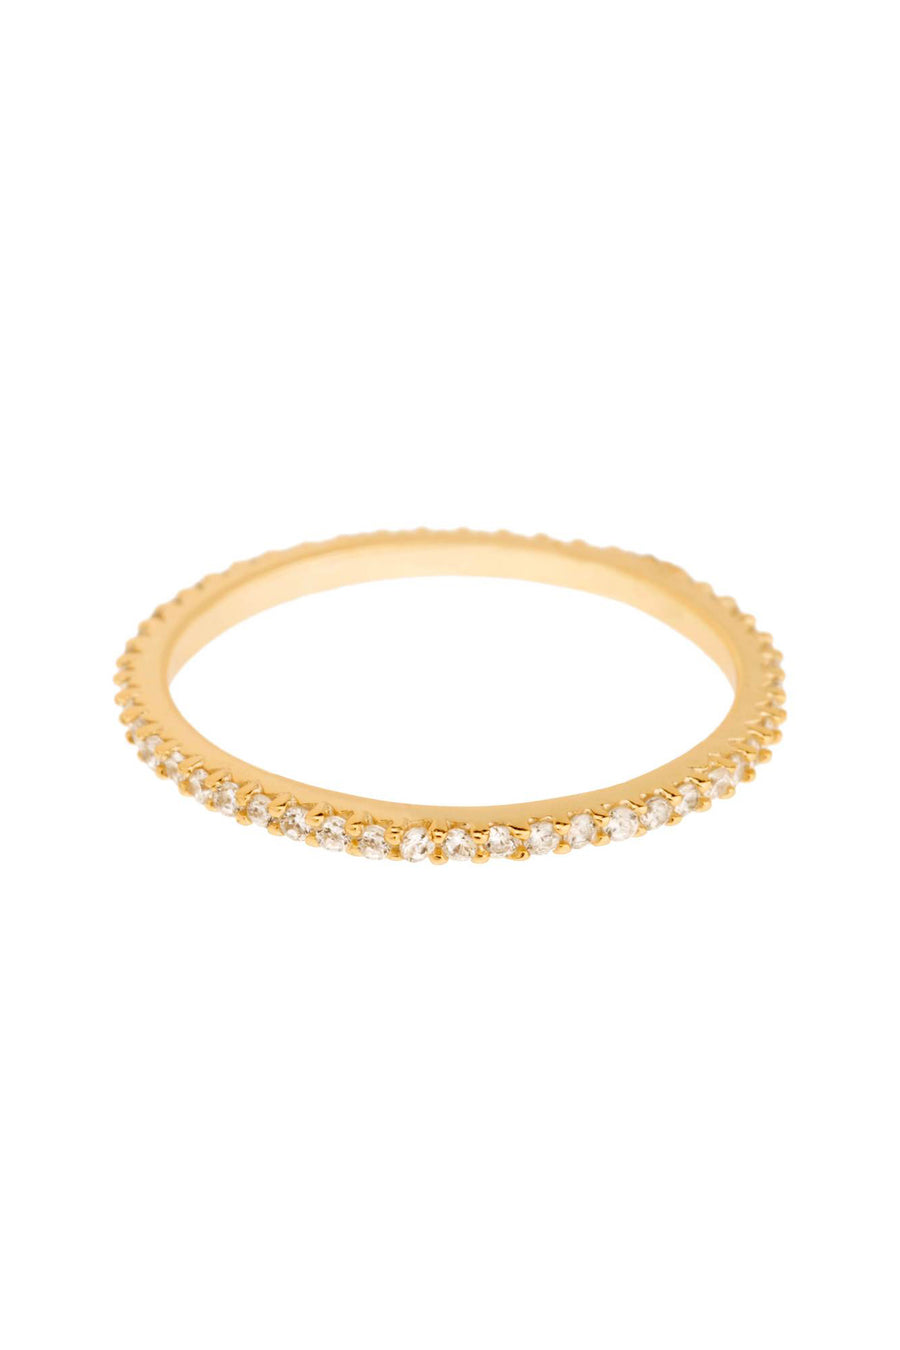 Diamond Eternity Band - YG - Pavilion